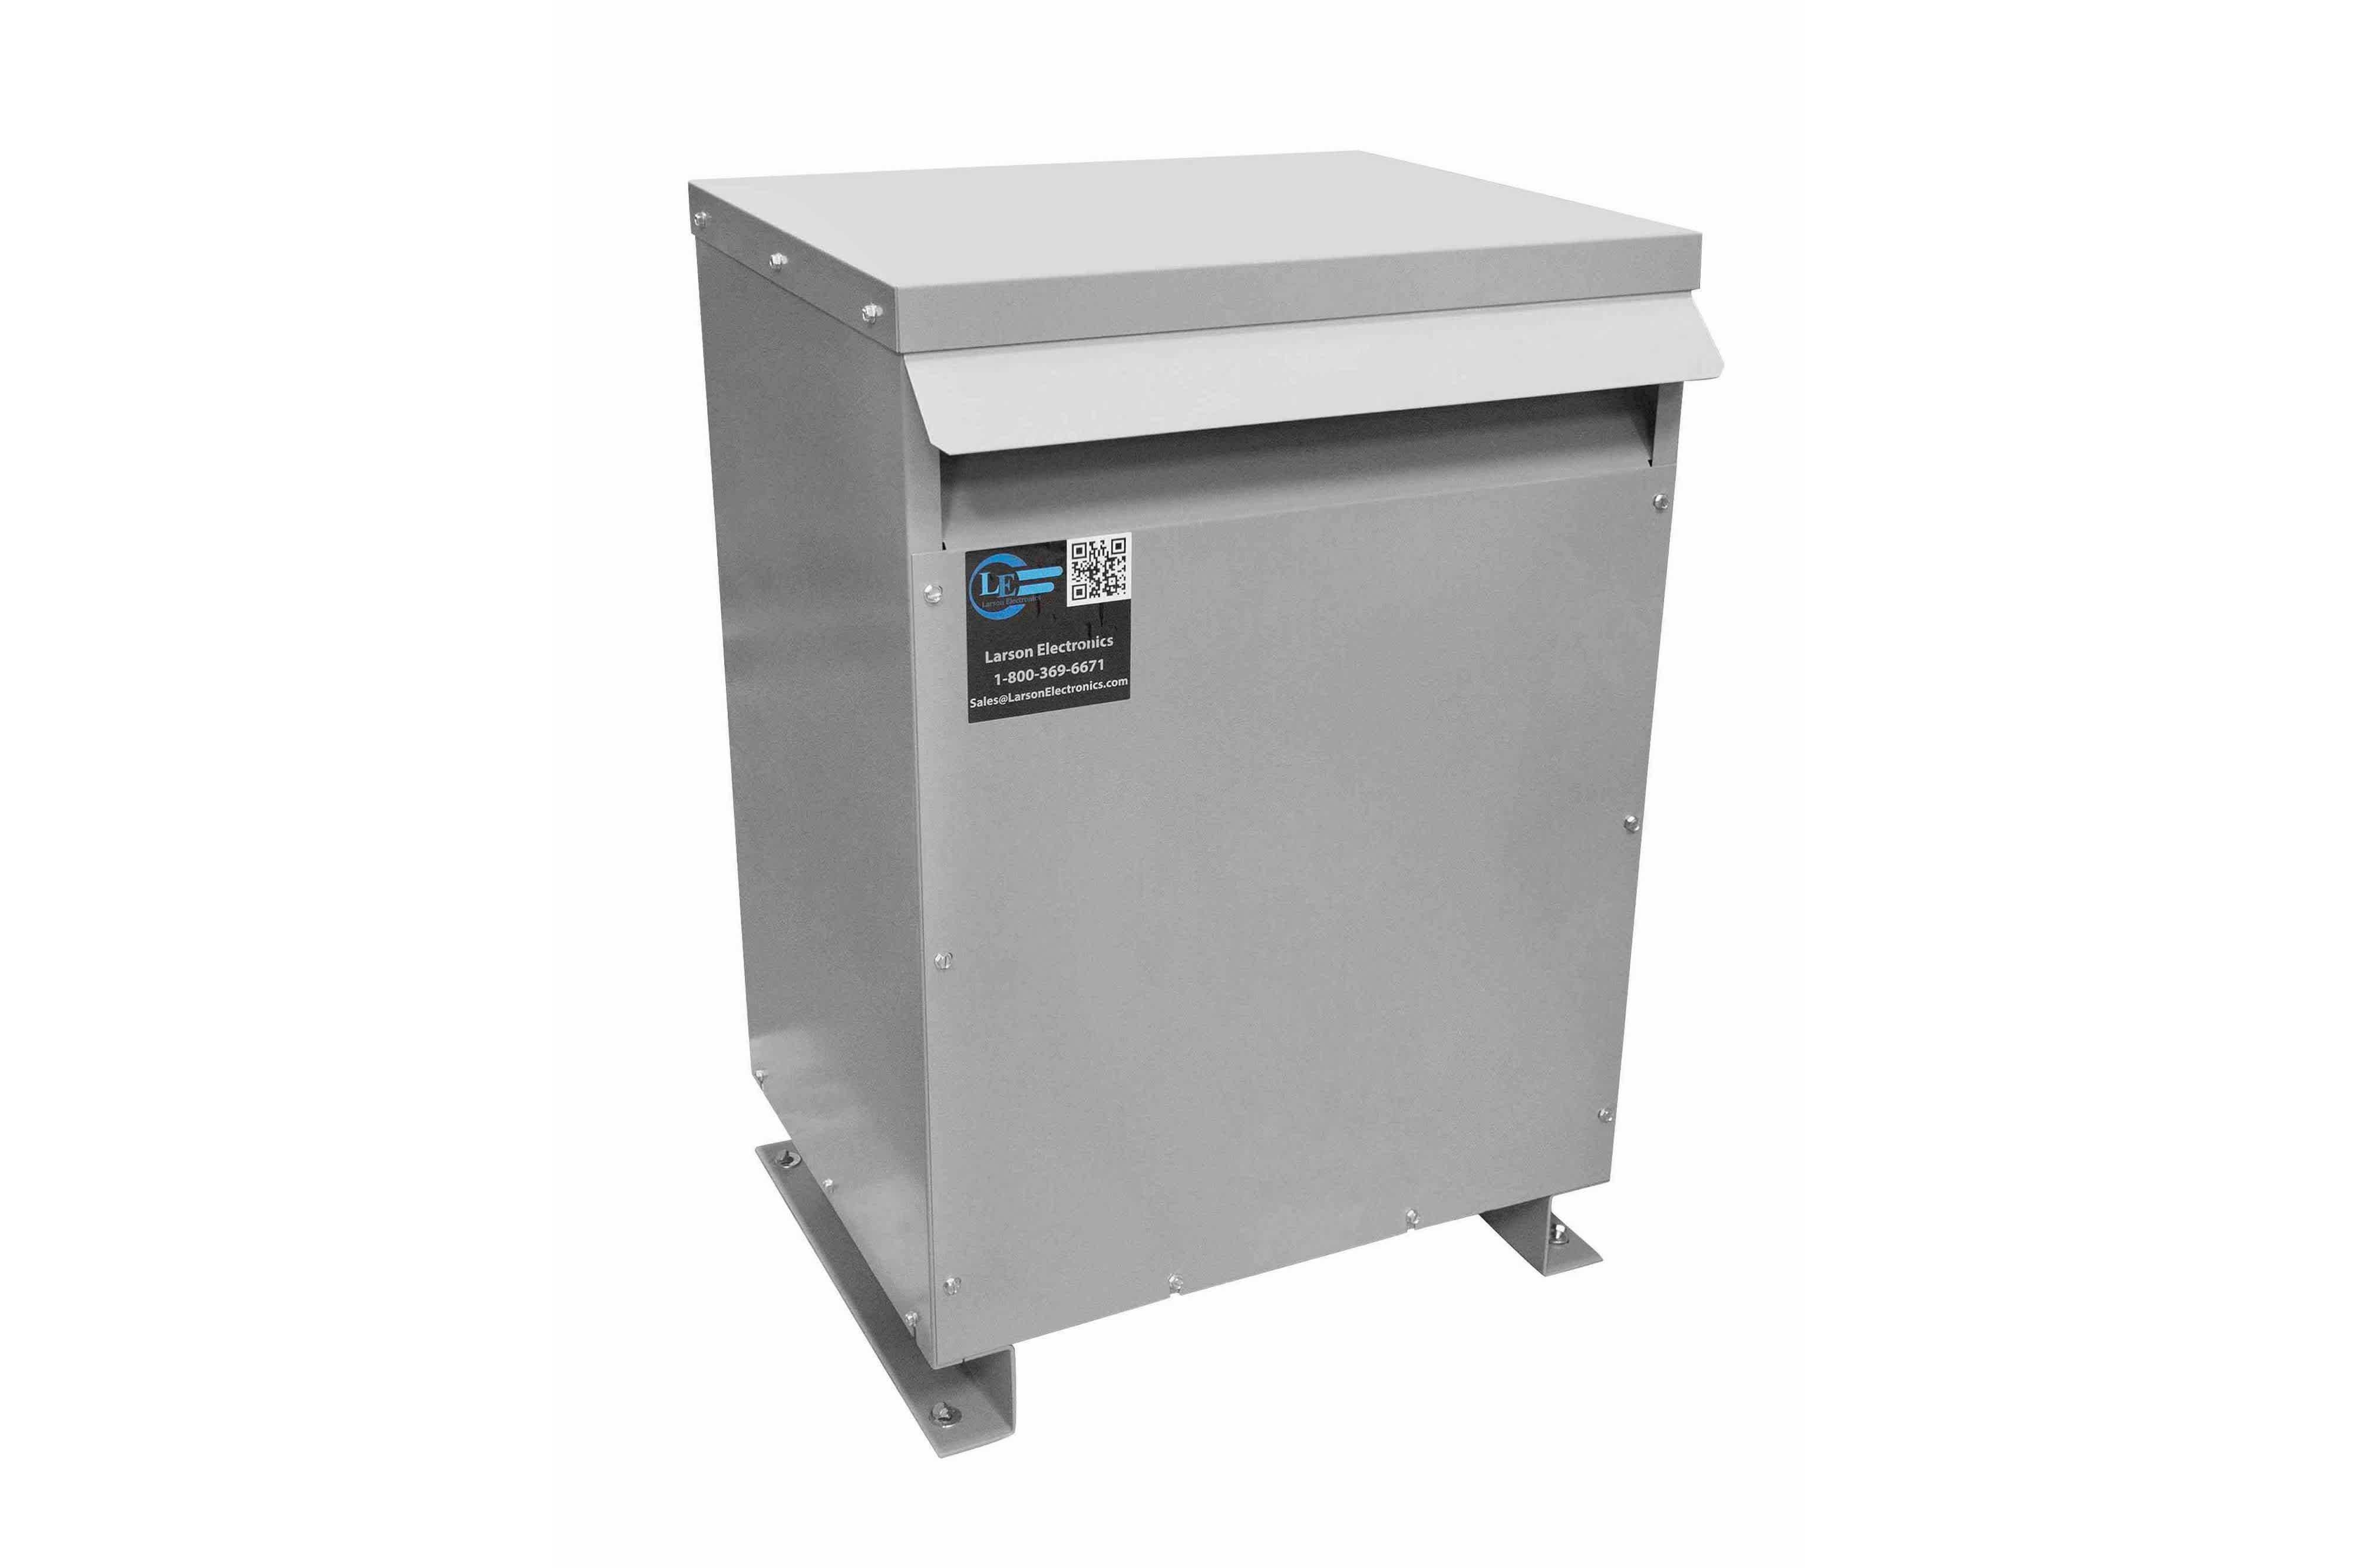 900 kVA 3PH Isolation Transformer, 600V Wye Primary, 240V/120 Delta Secondary, N3R, Ventilated, 60 Hz